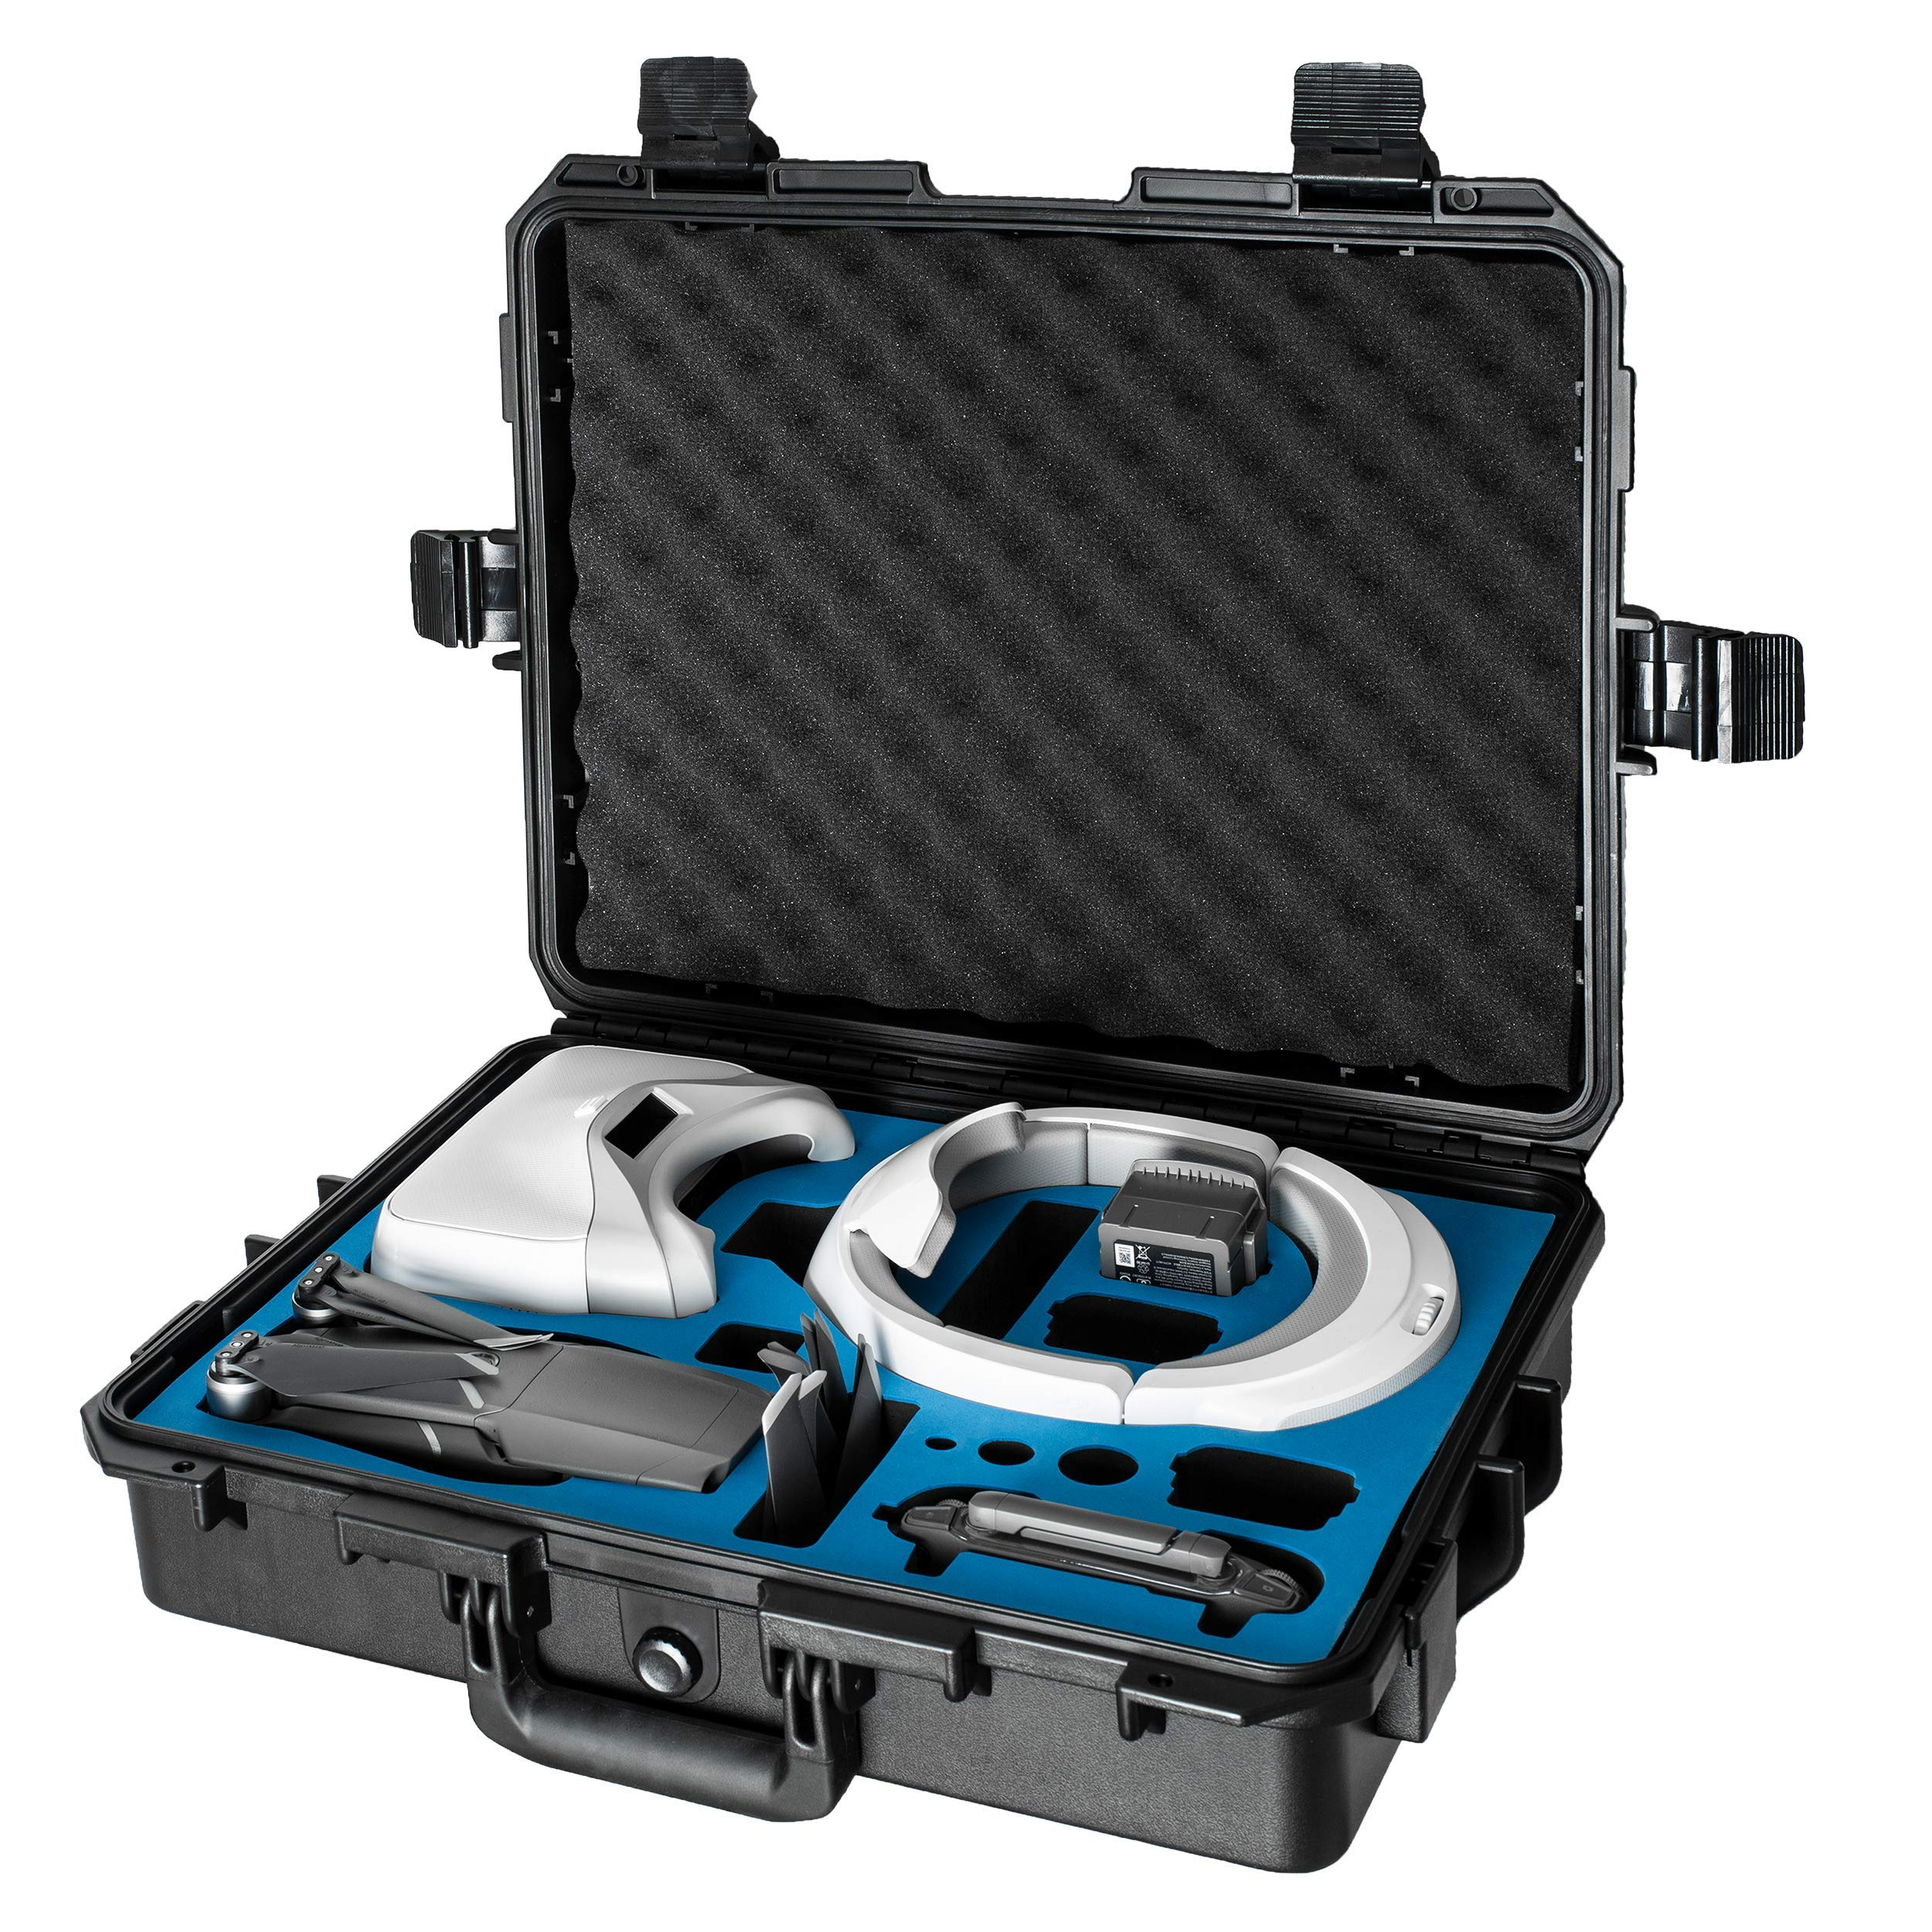 Ultimaxx Water Proof Rugged Compact Storage Hard Case for DJI FPV VR Goggles & DJI Mavic 2 Pro/Zoom + Fits Extra Accessories by Ultimaxx